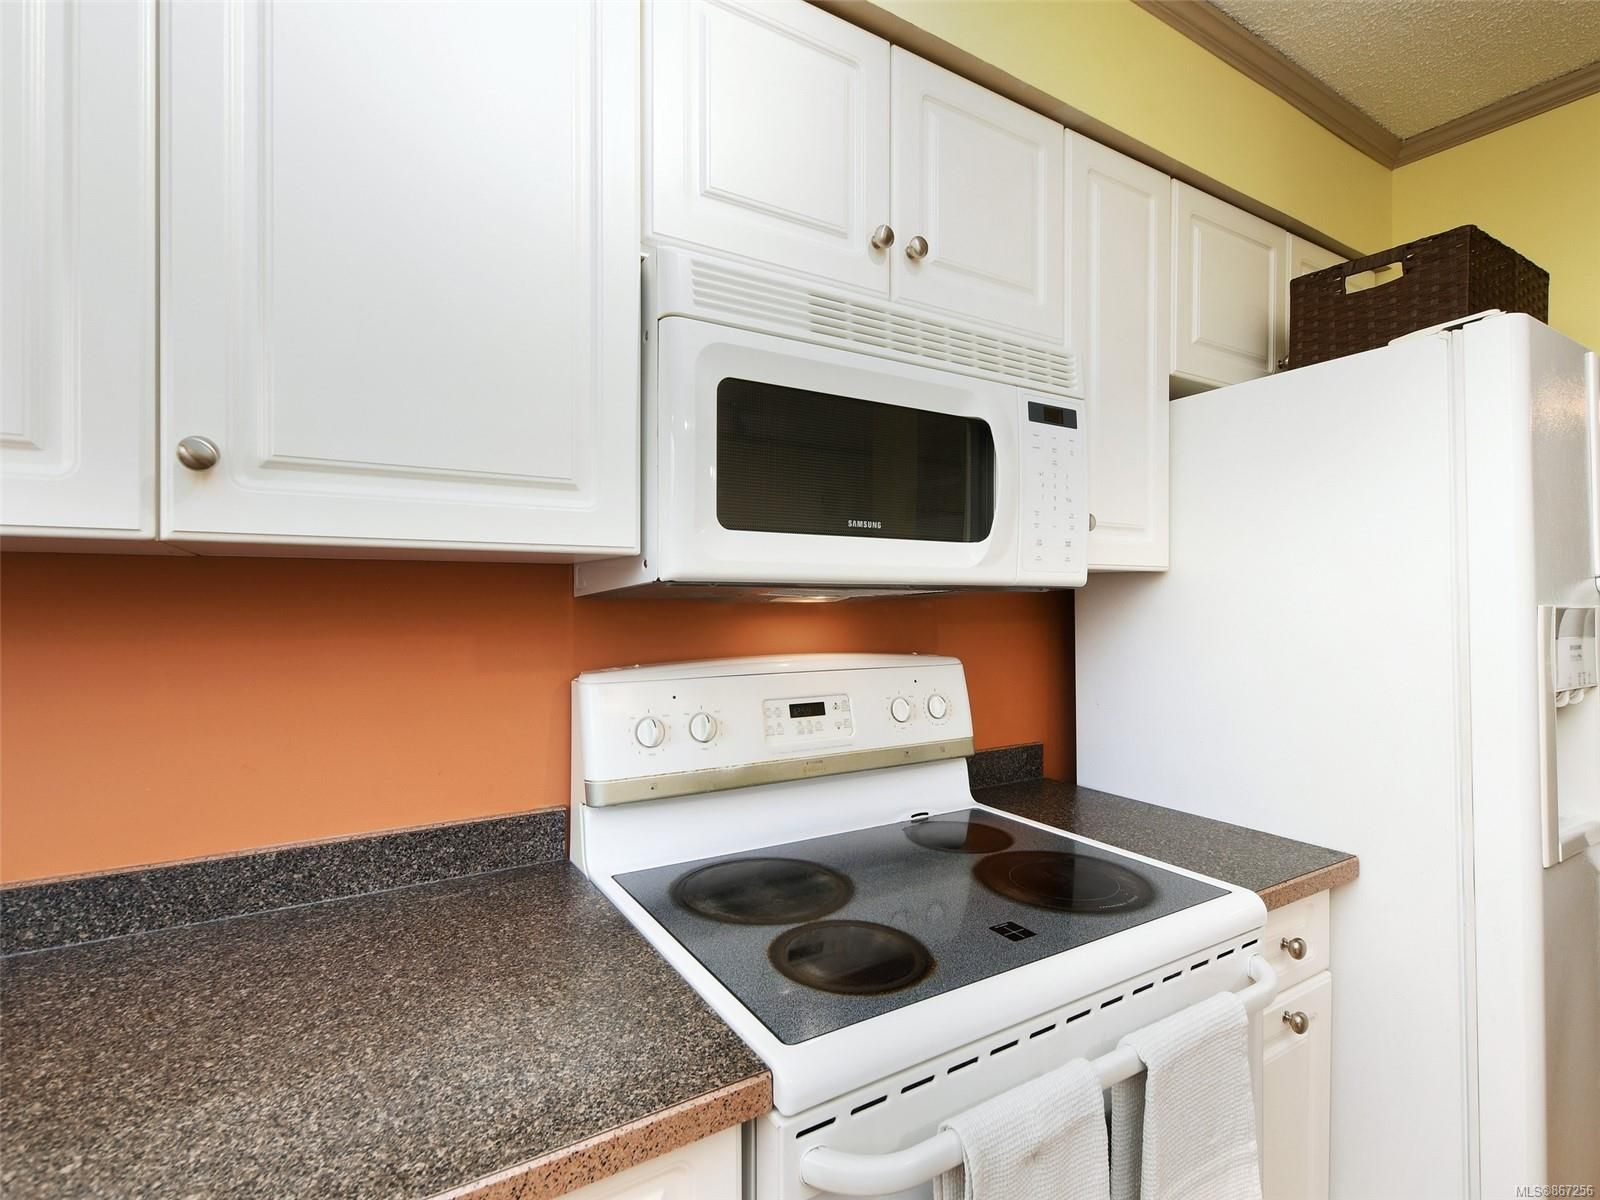 Photo 8: Photos: 5 869 Swan St in : SE Swan Lake Row/Townhouse for sale (Saanich East)  : MLS®# 867256